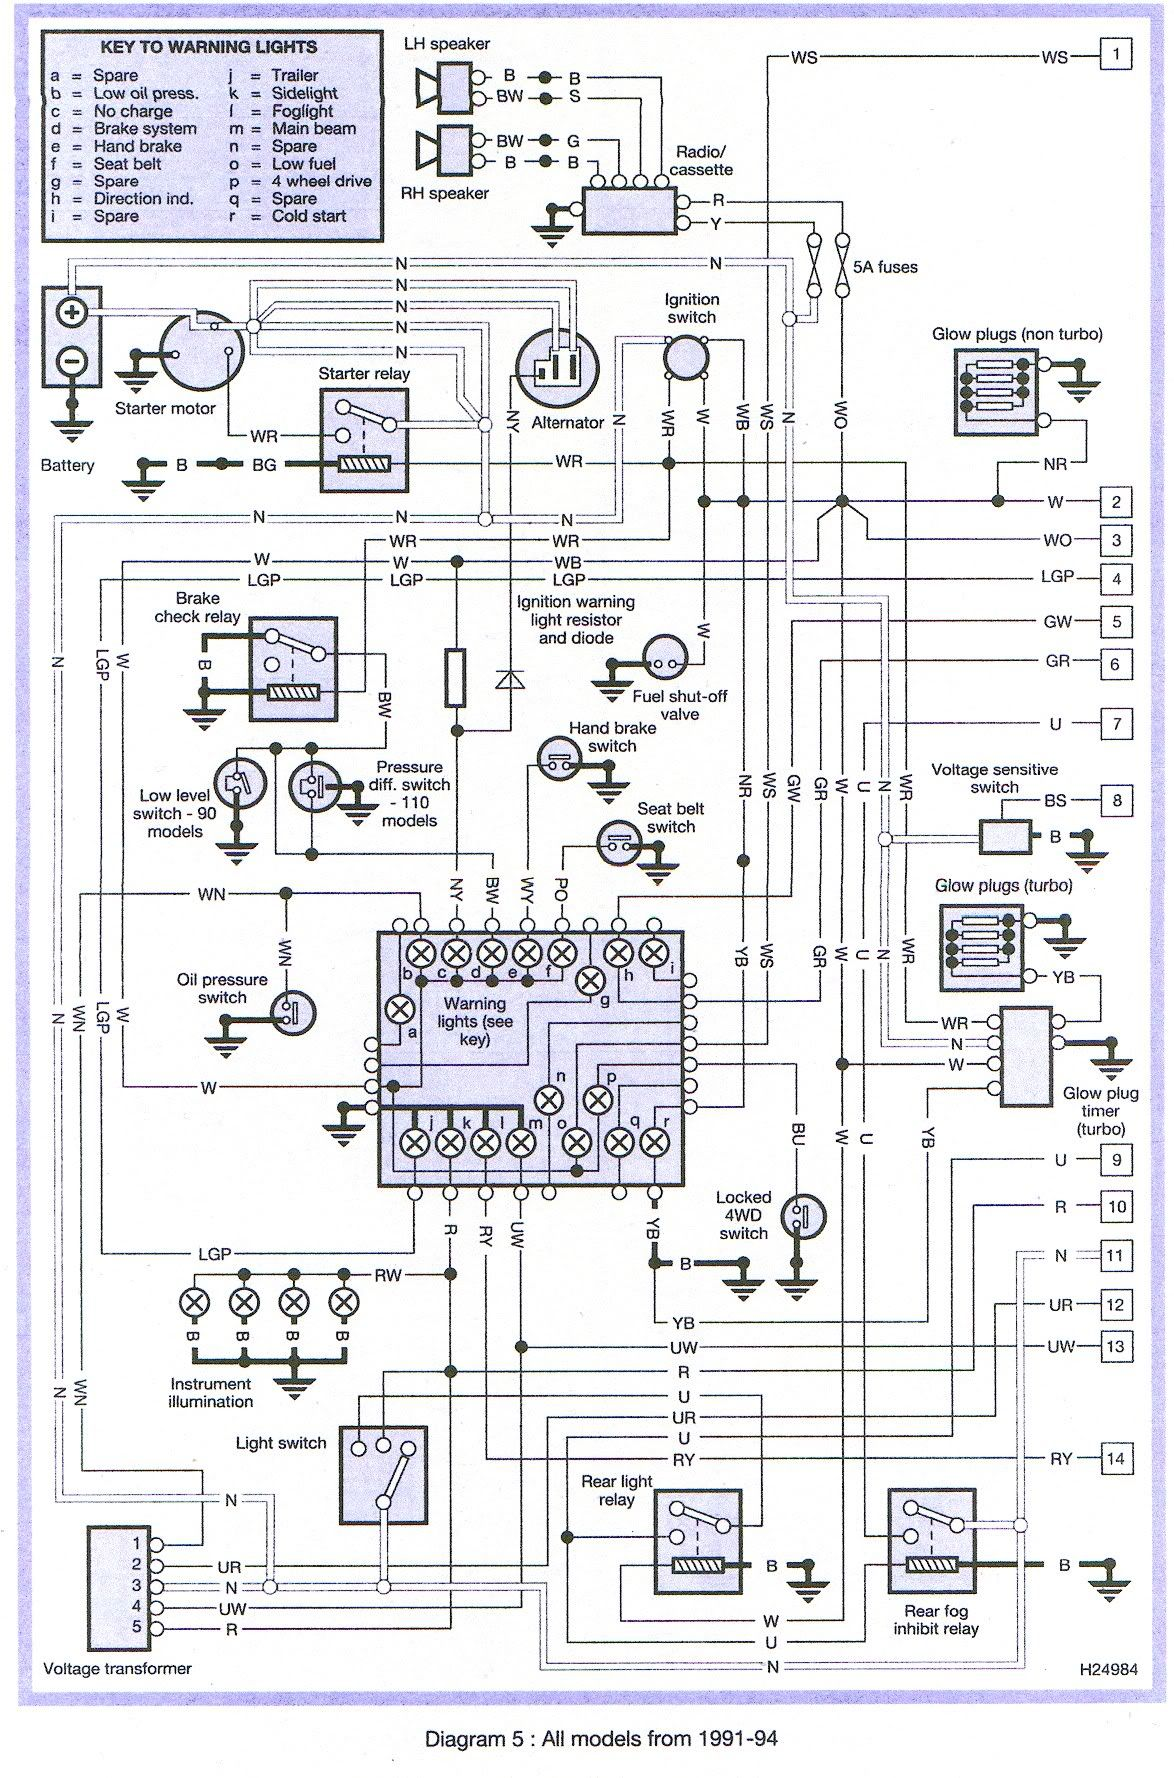 07629544bfff38ad2881b2c21312c6e6 land rover discovery wiring diagram manual repair with engine Land Rover Discovery 1 at creativeand.co